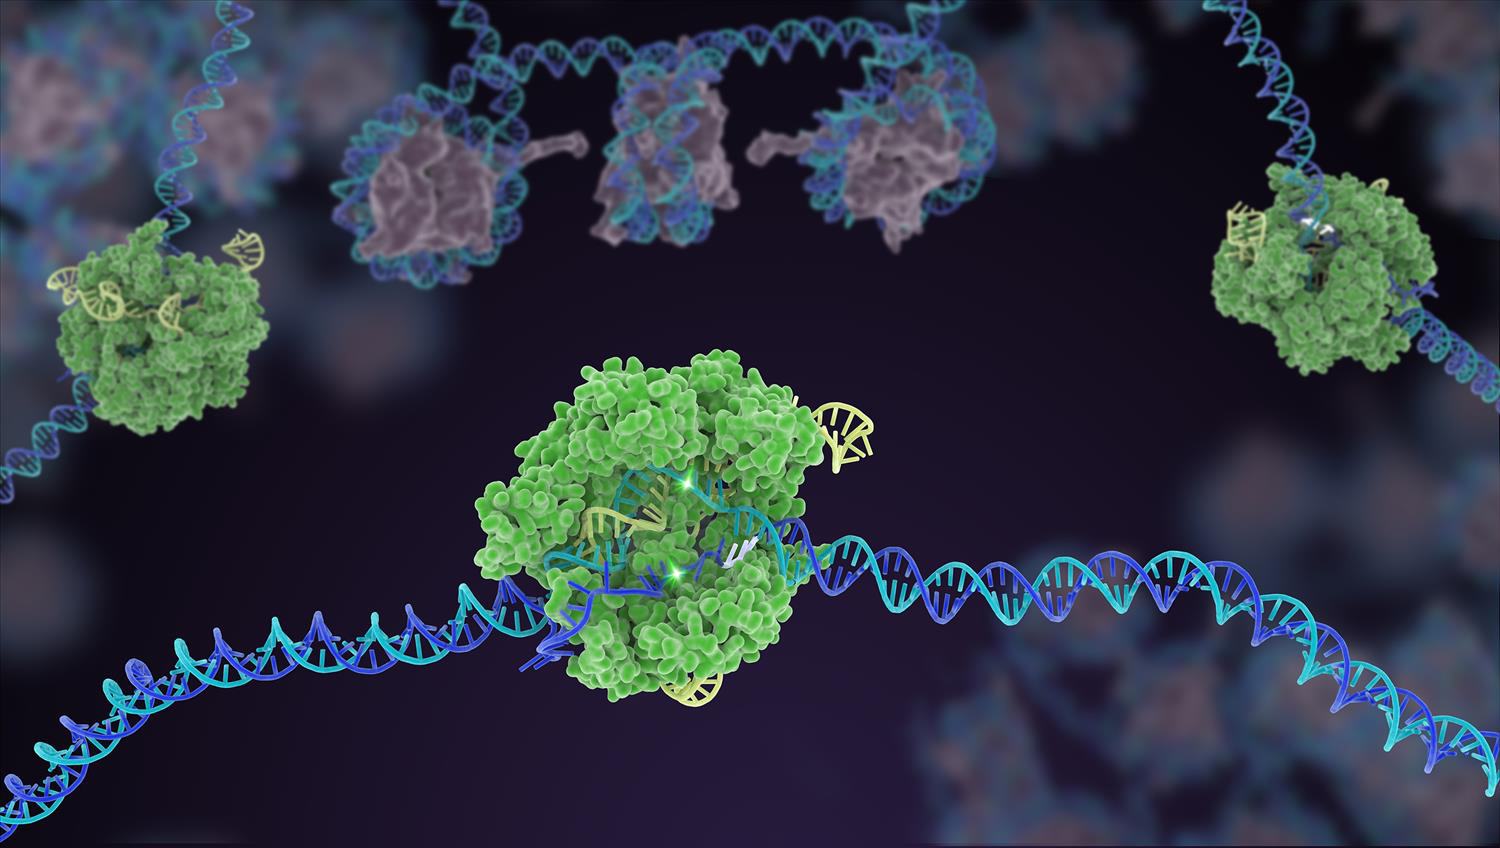 Cas9 protein involved in the CRISPR gene-editing technology